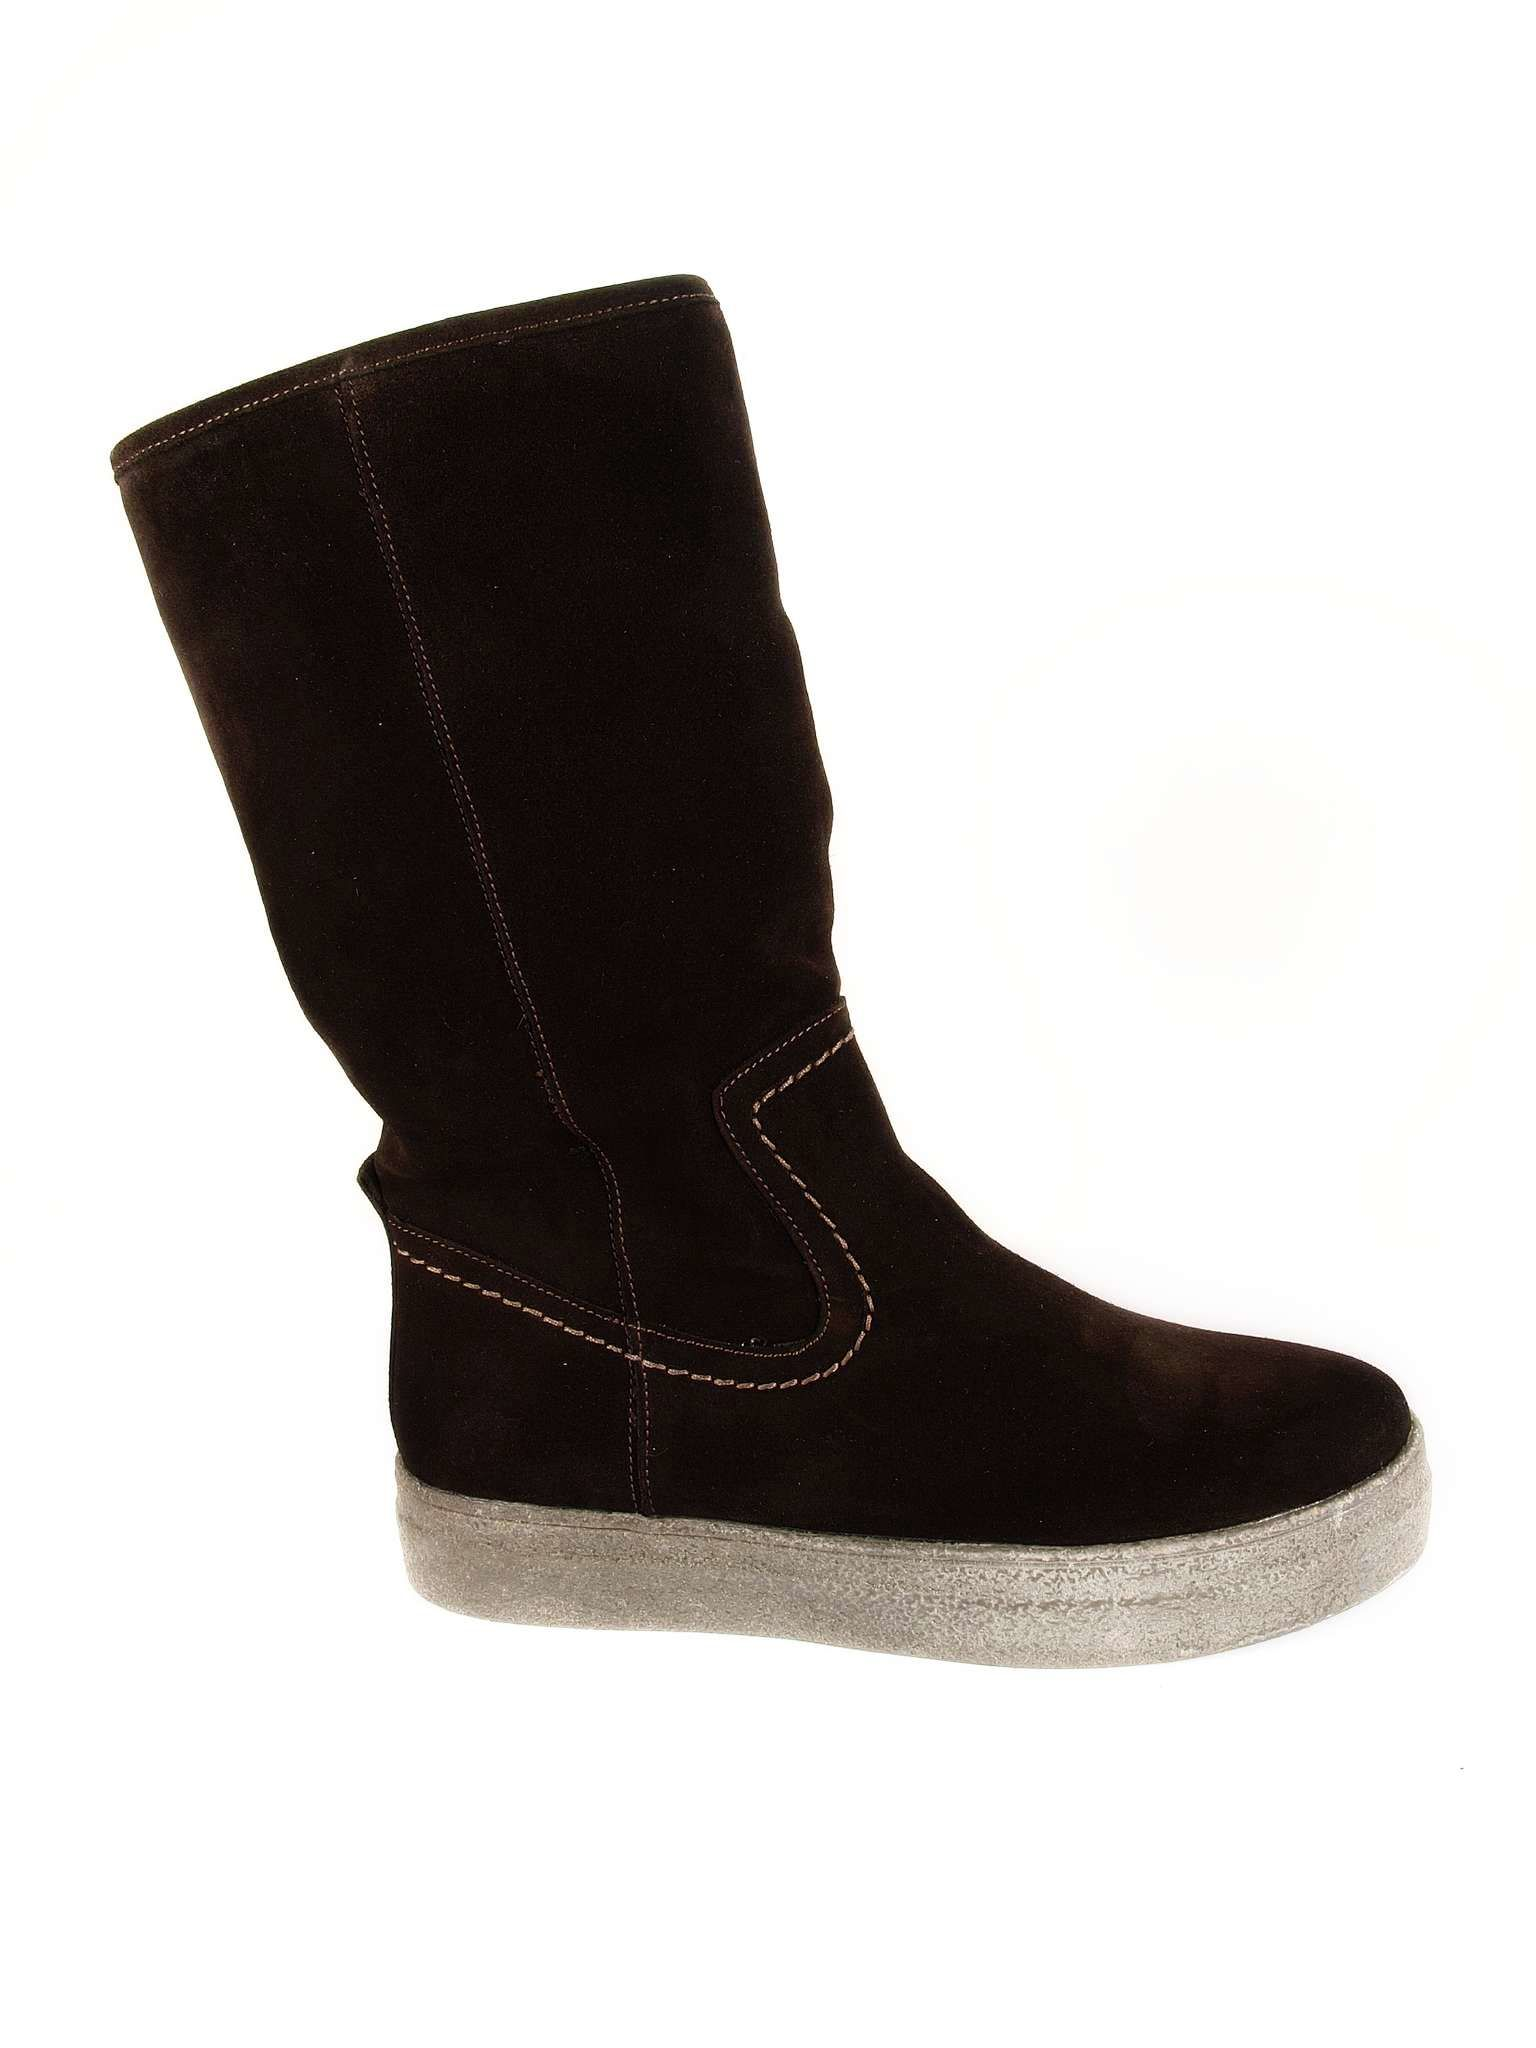 Shoes ampamp Boots Online  Shoescom